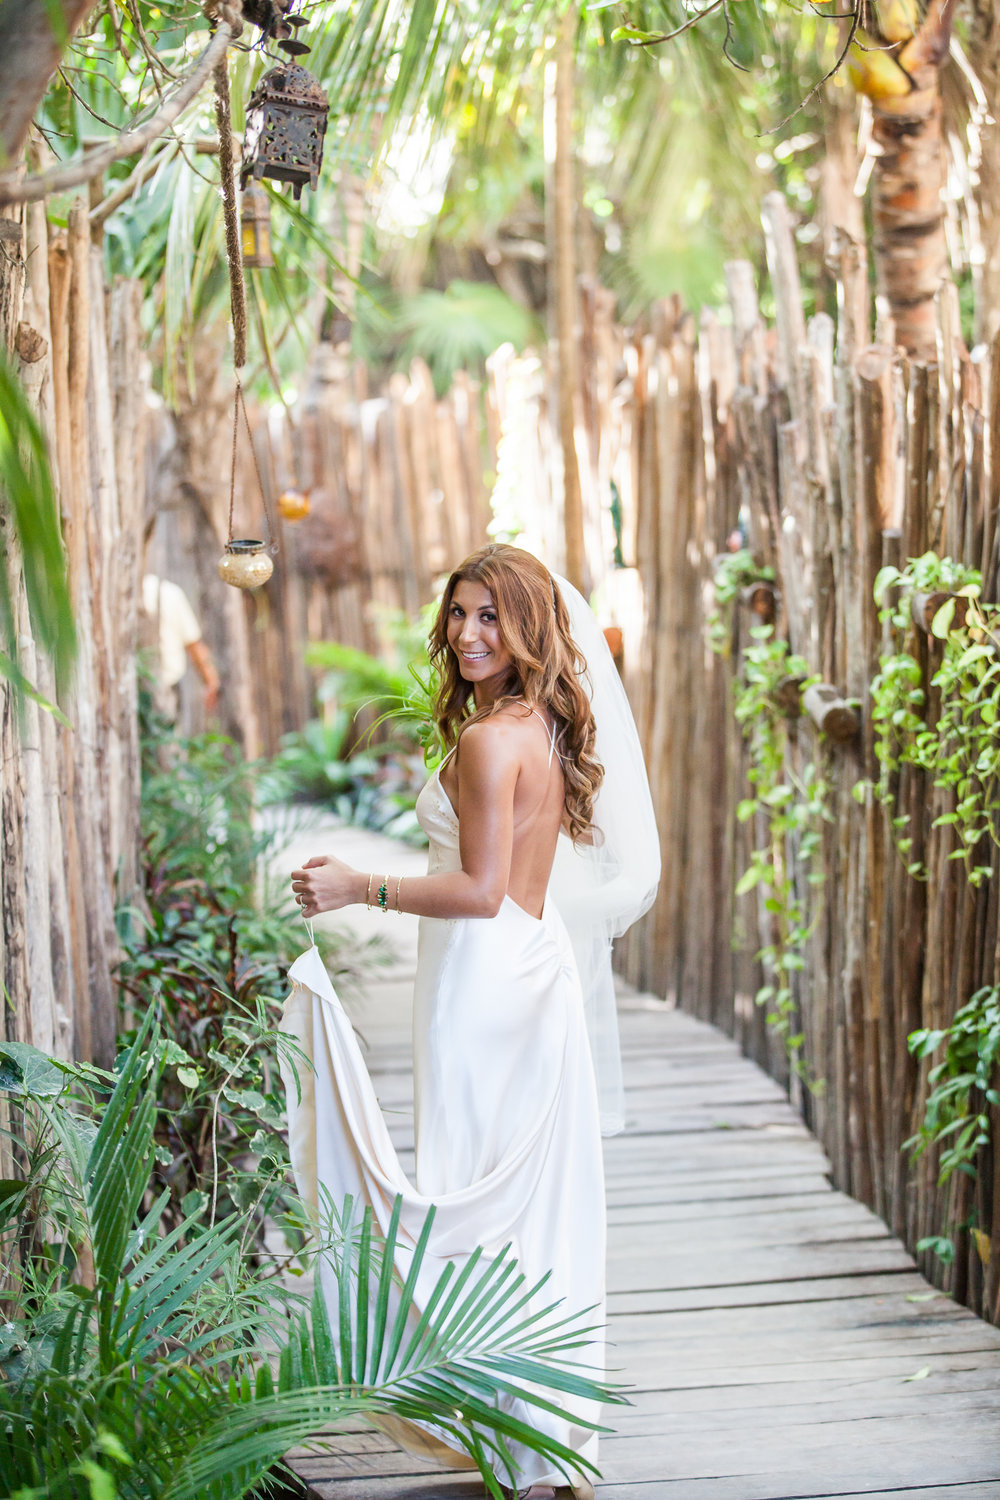 emedina_tulum_wedding_096.JPG